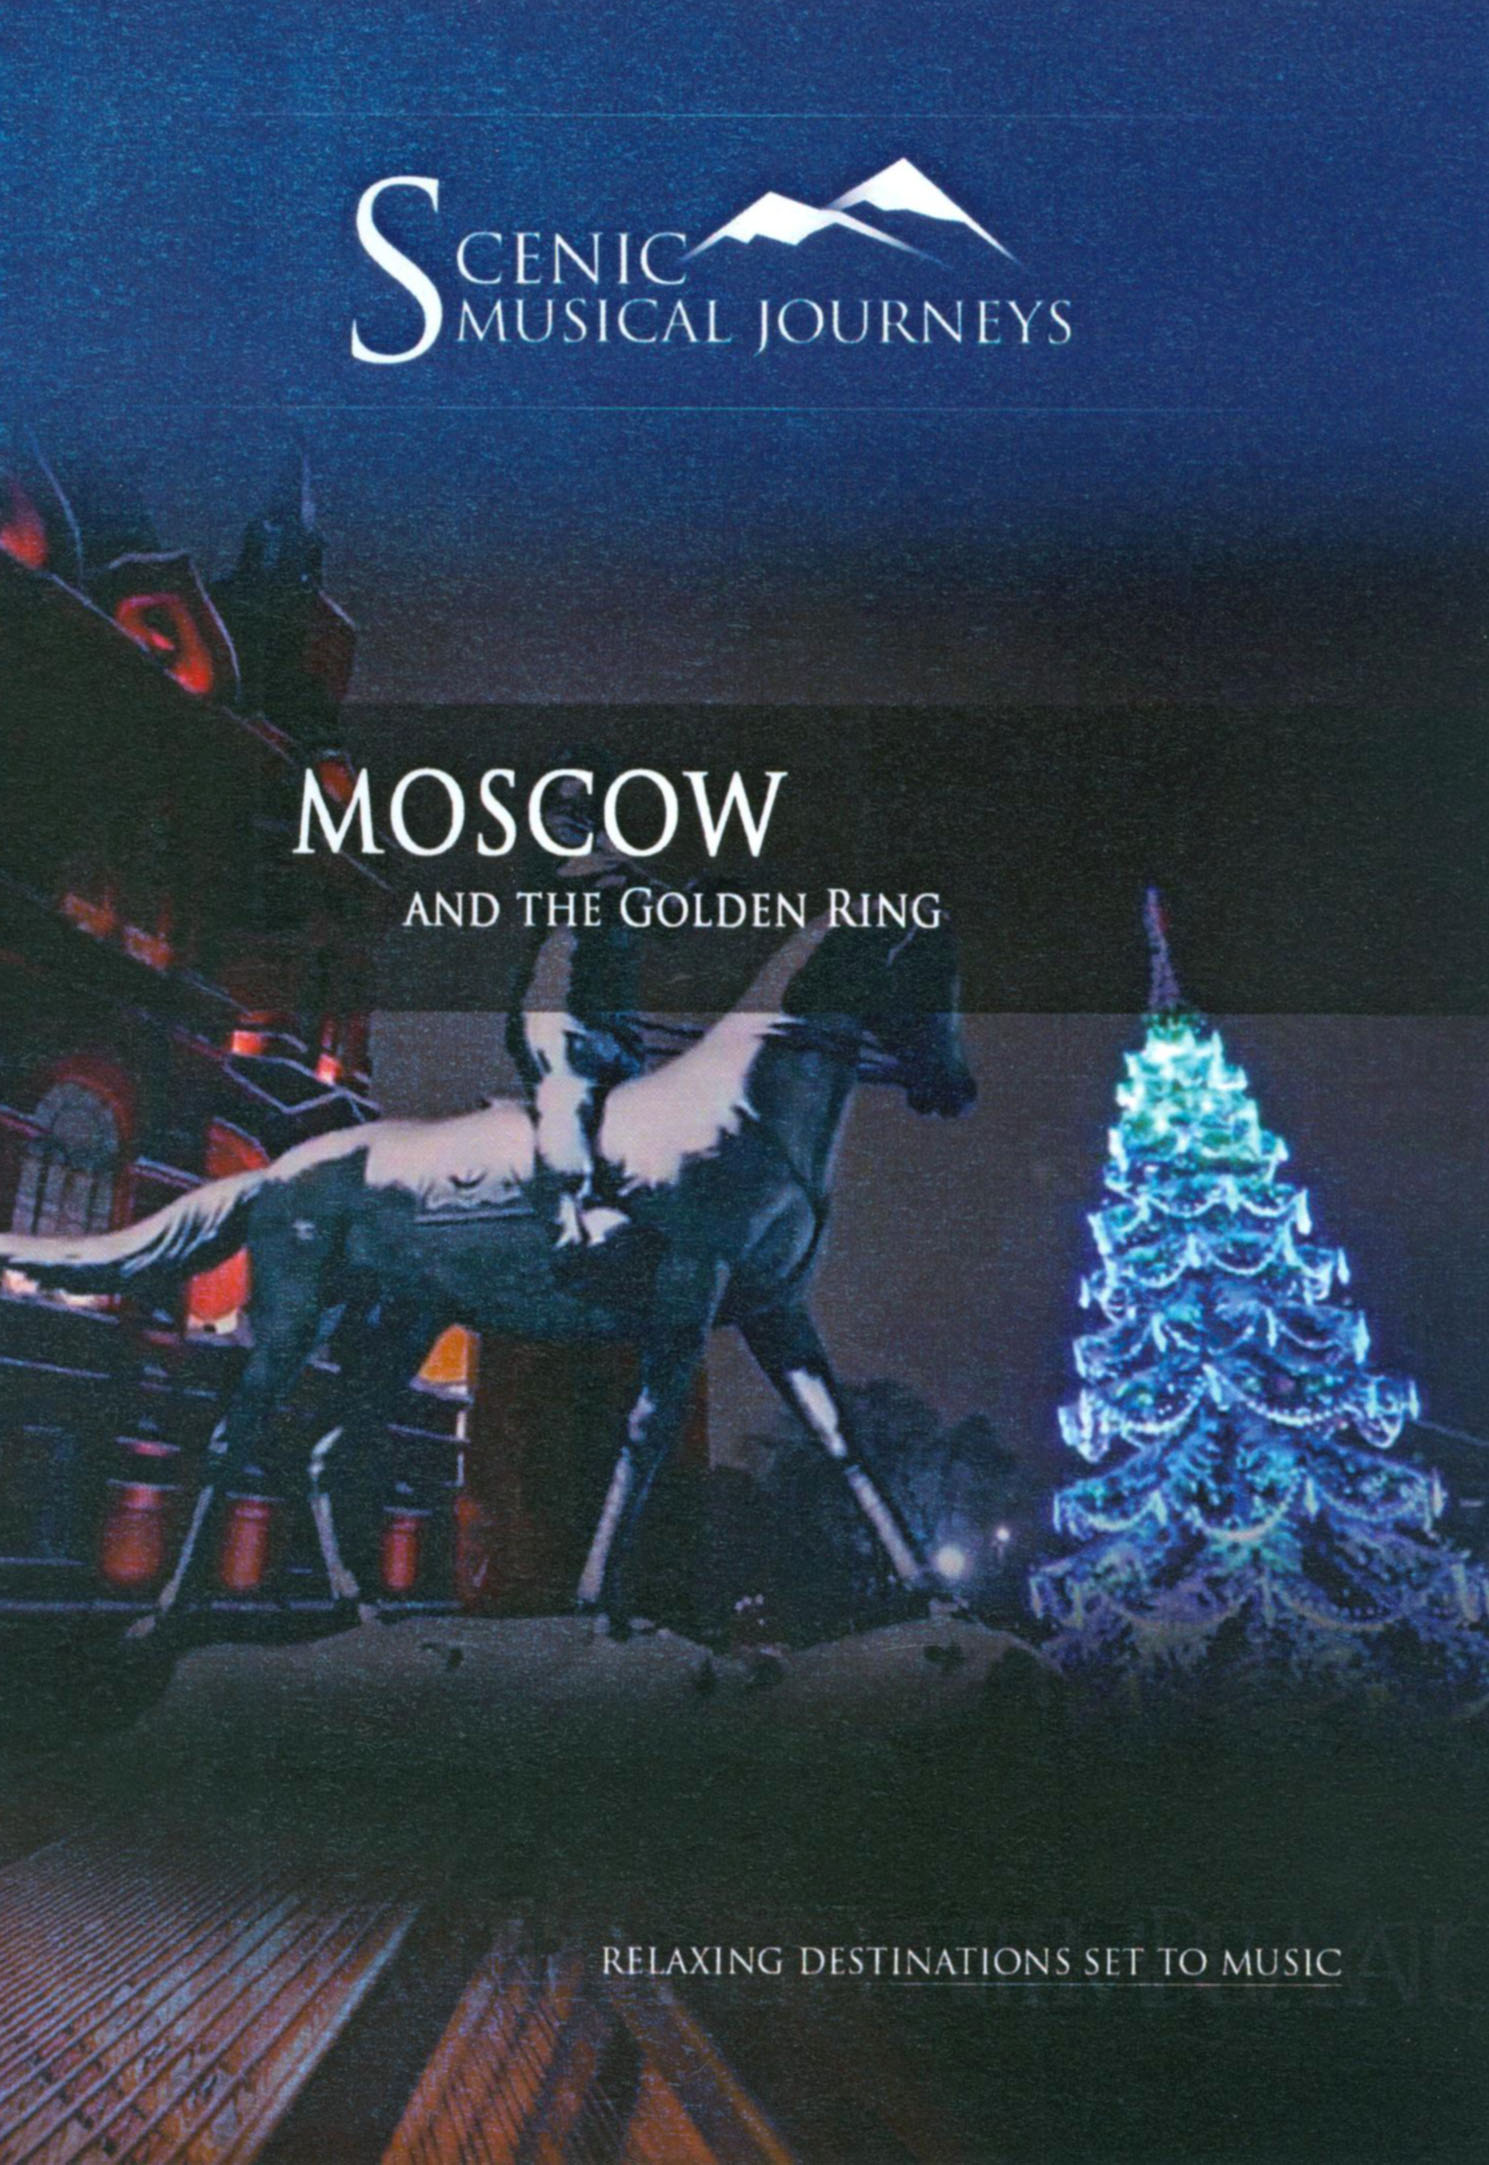 Scenic Musical Journeys: Moscow - And the Golden Ring